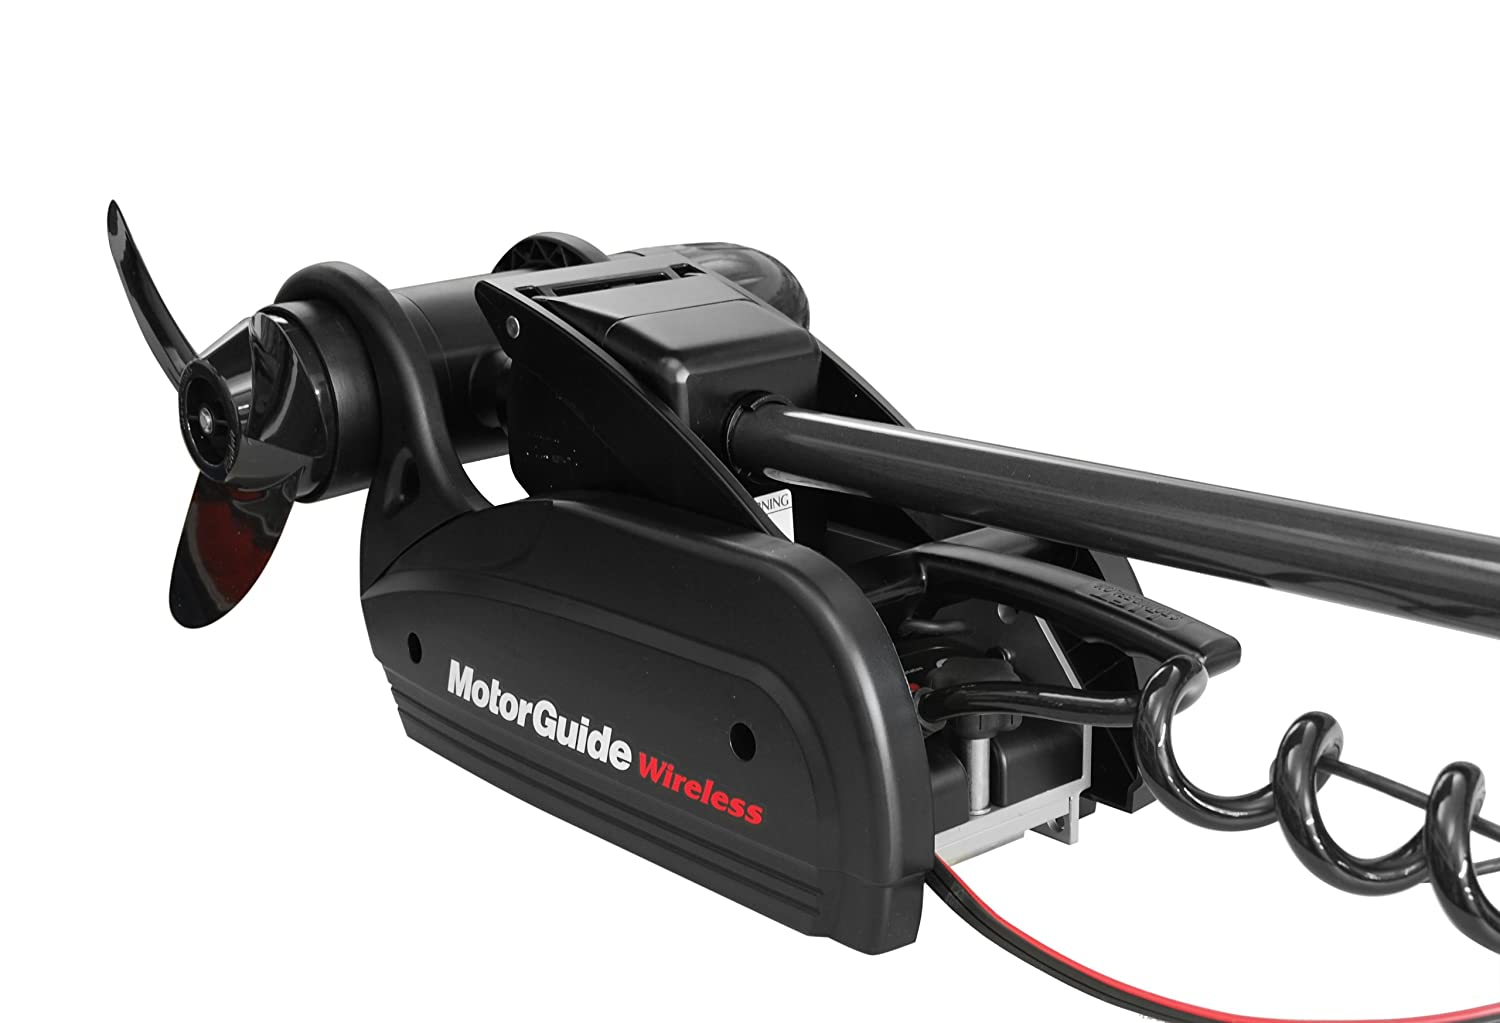 MotorGuide 12-Volt Wireless Freshwater Trolling Motor with ...